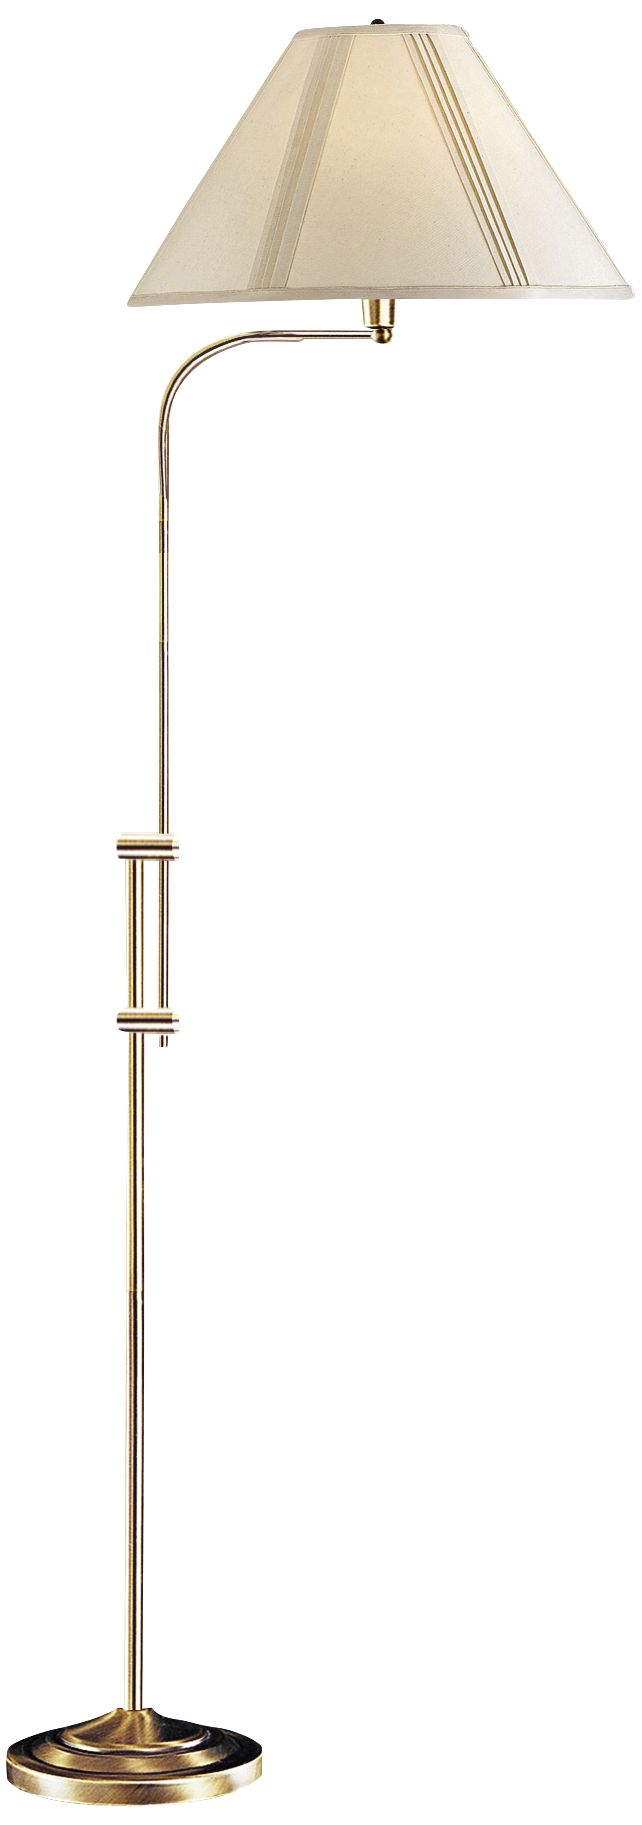 Hartwick Antique Brass Pharmacy Floor Lamp